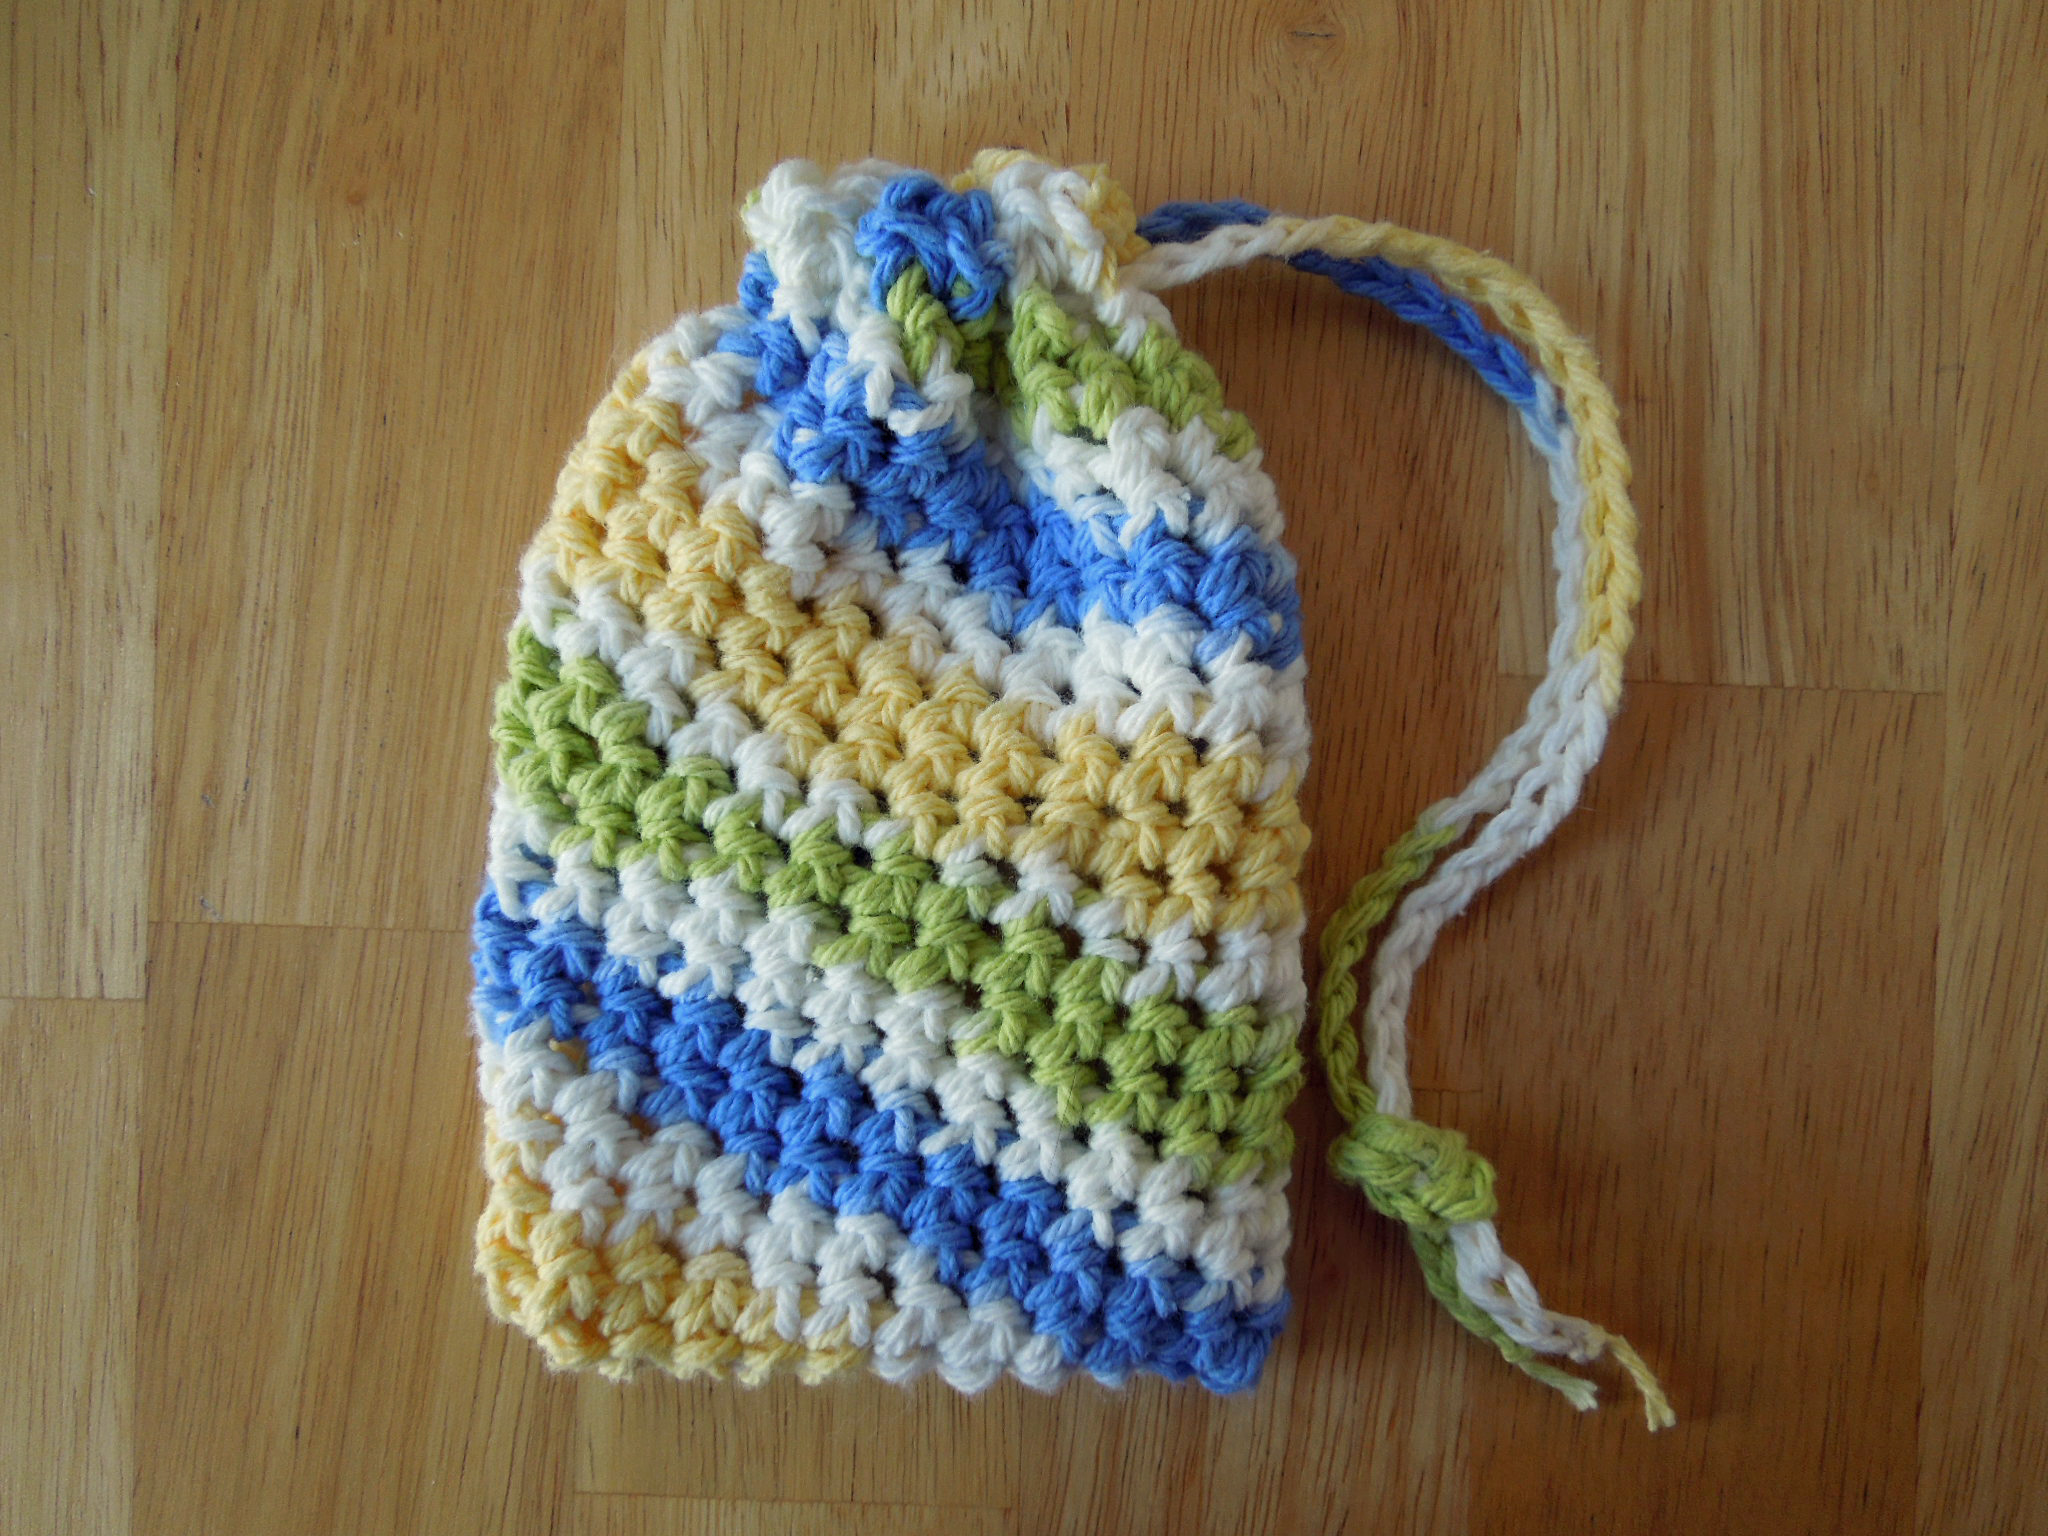 Crocheting Projects : Crocheting Projects And crocheting projects.